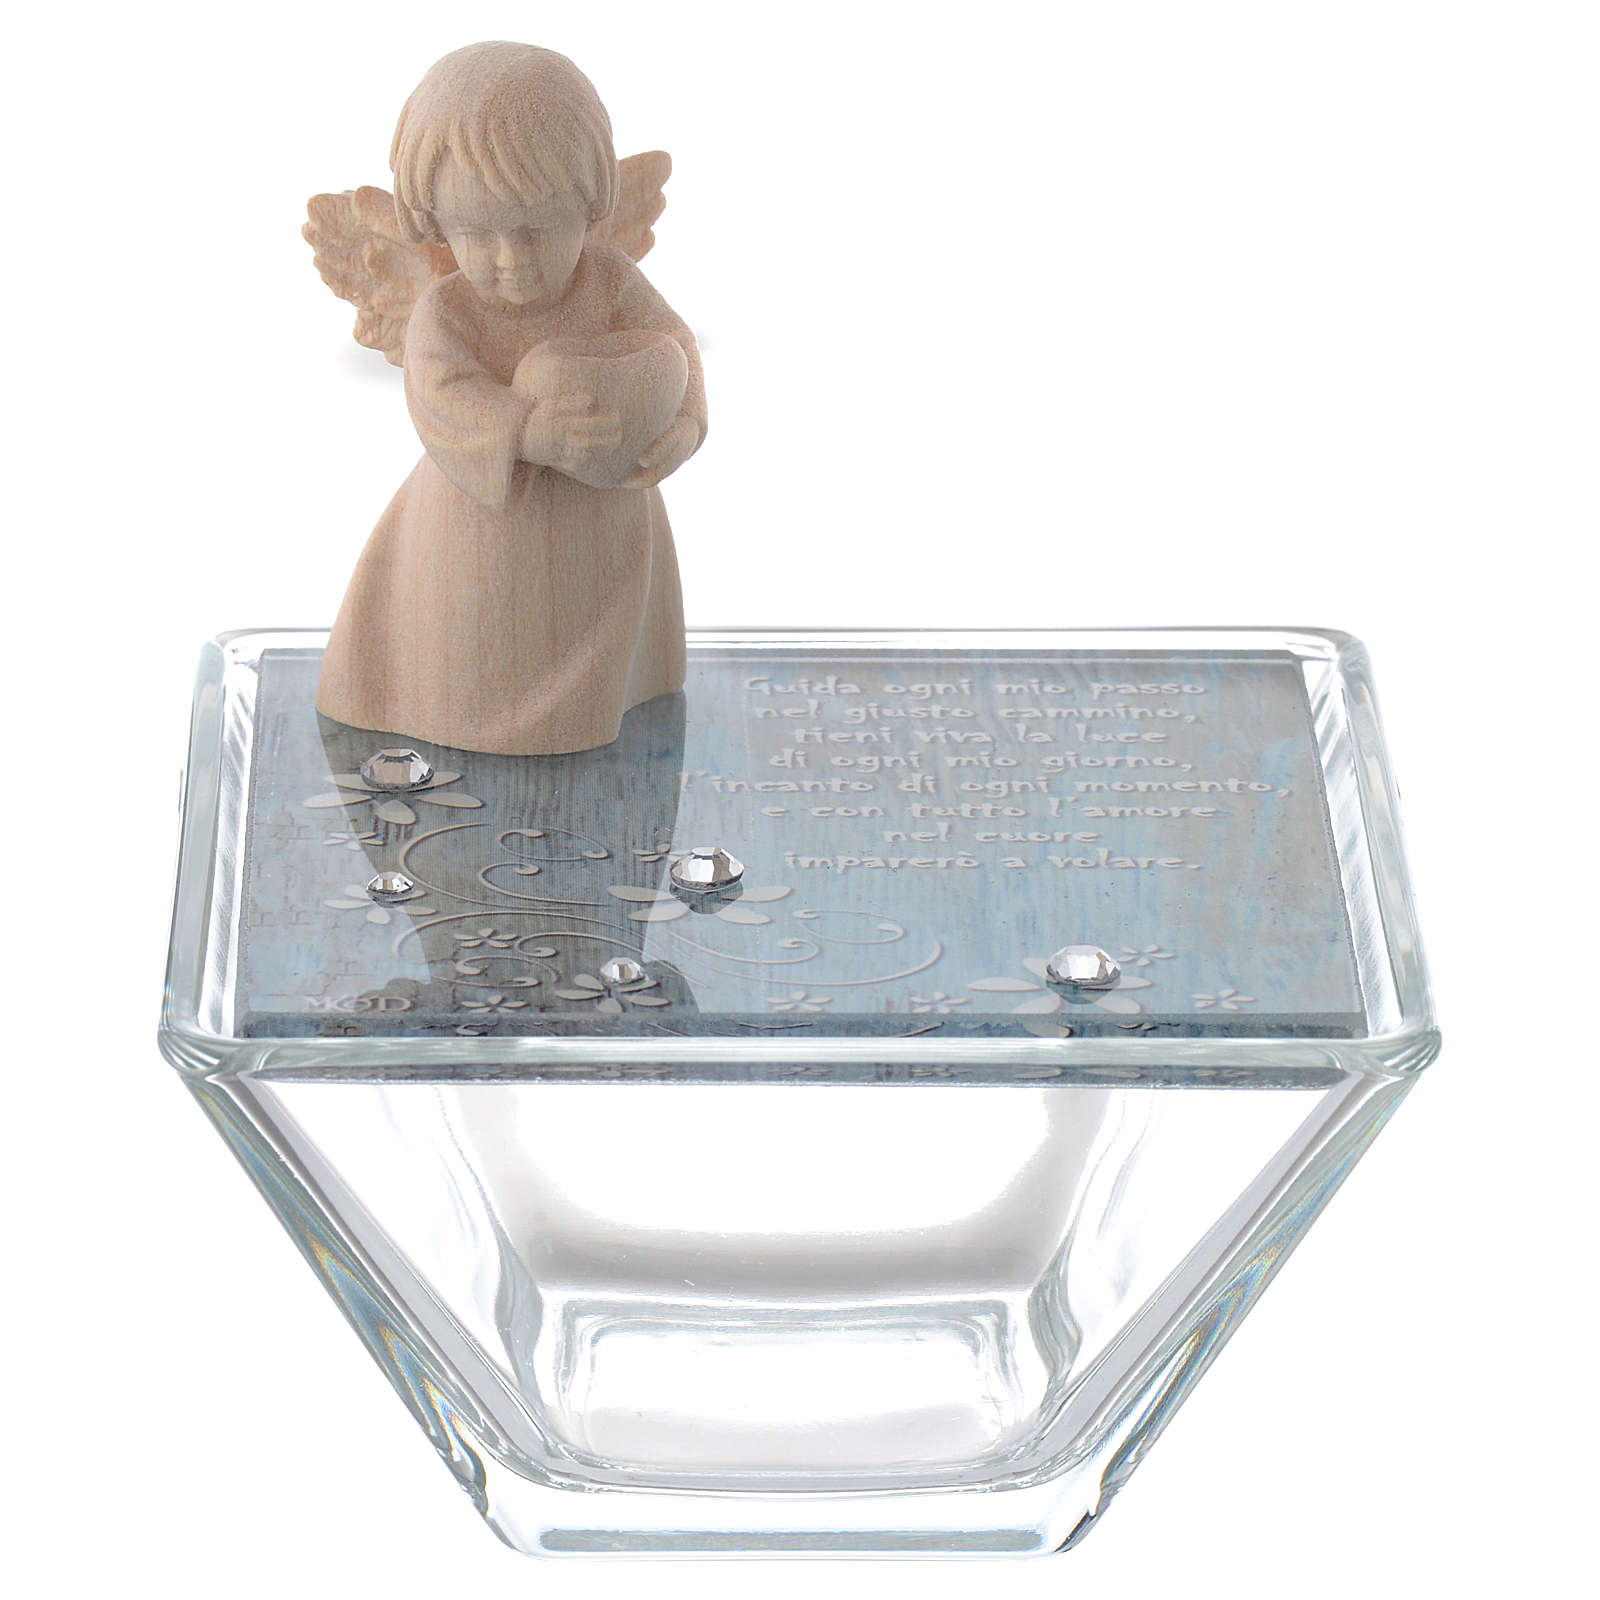 Box in blue glass 8x8cm with angel in wood 3